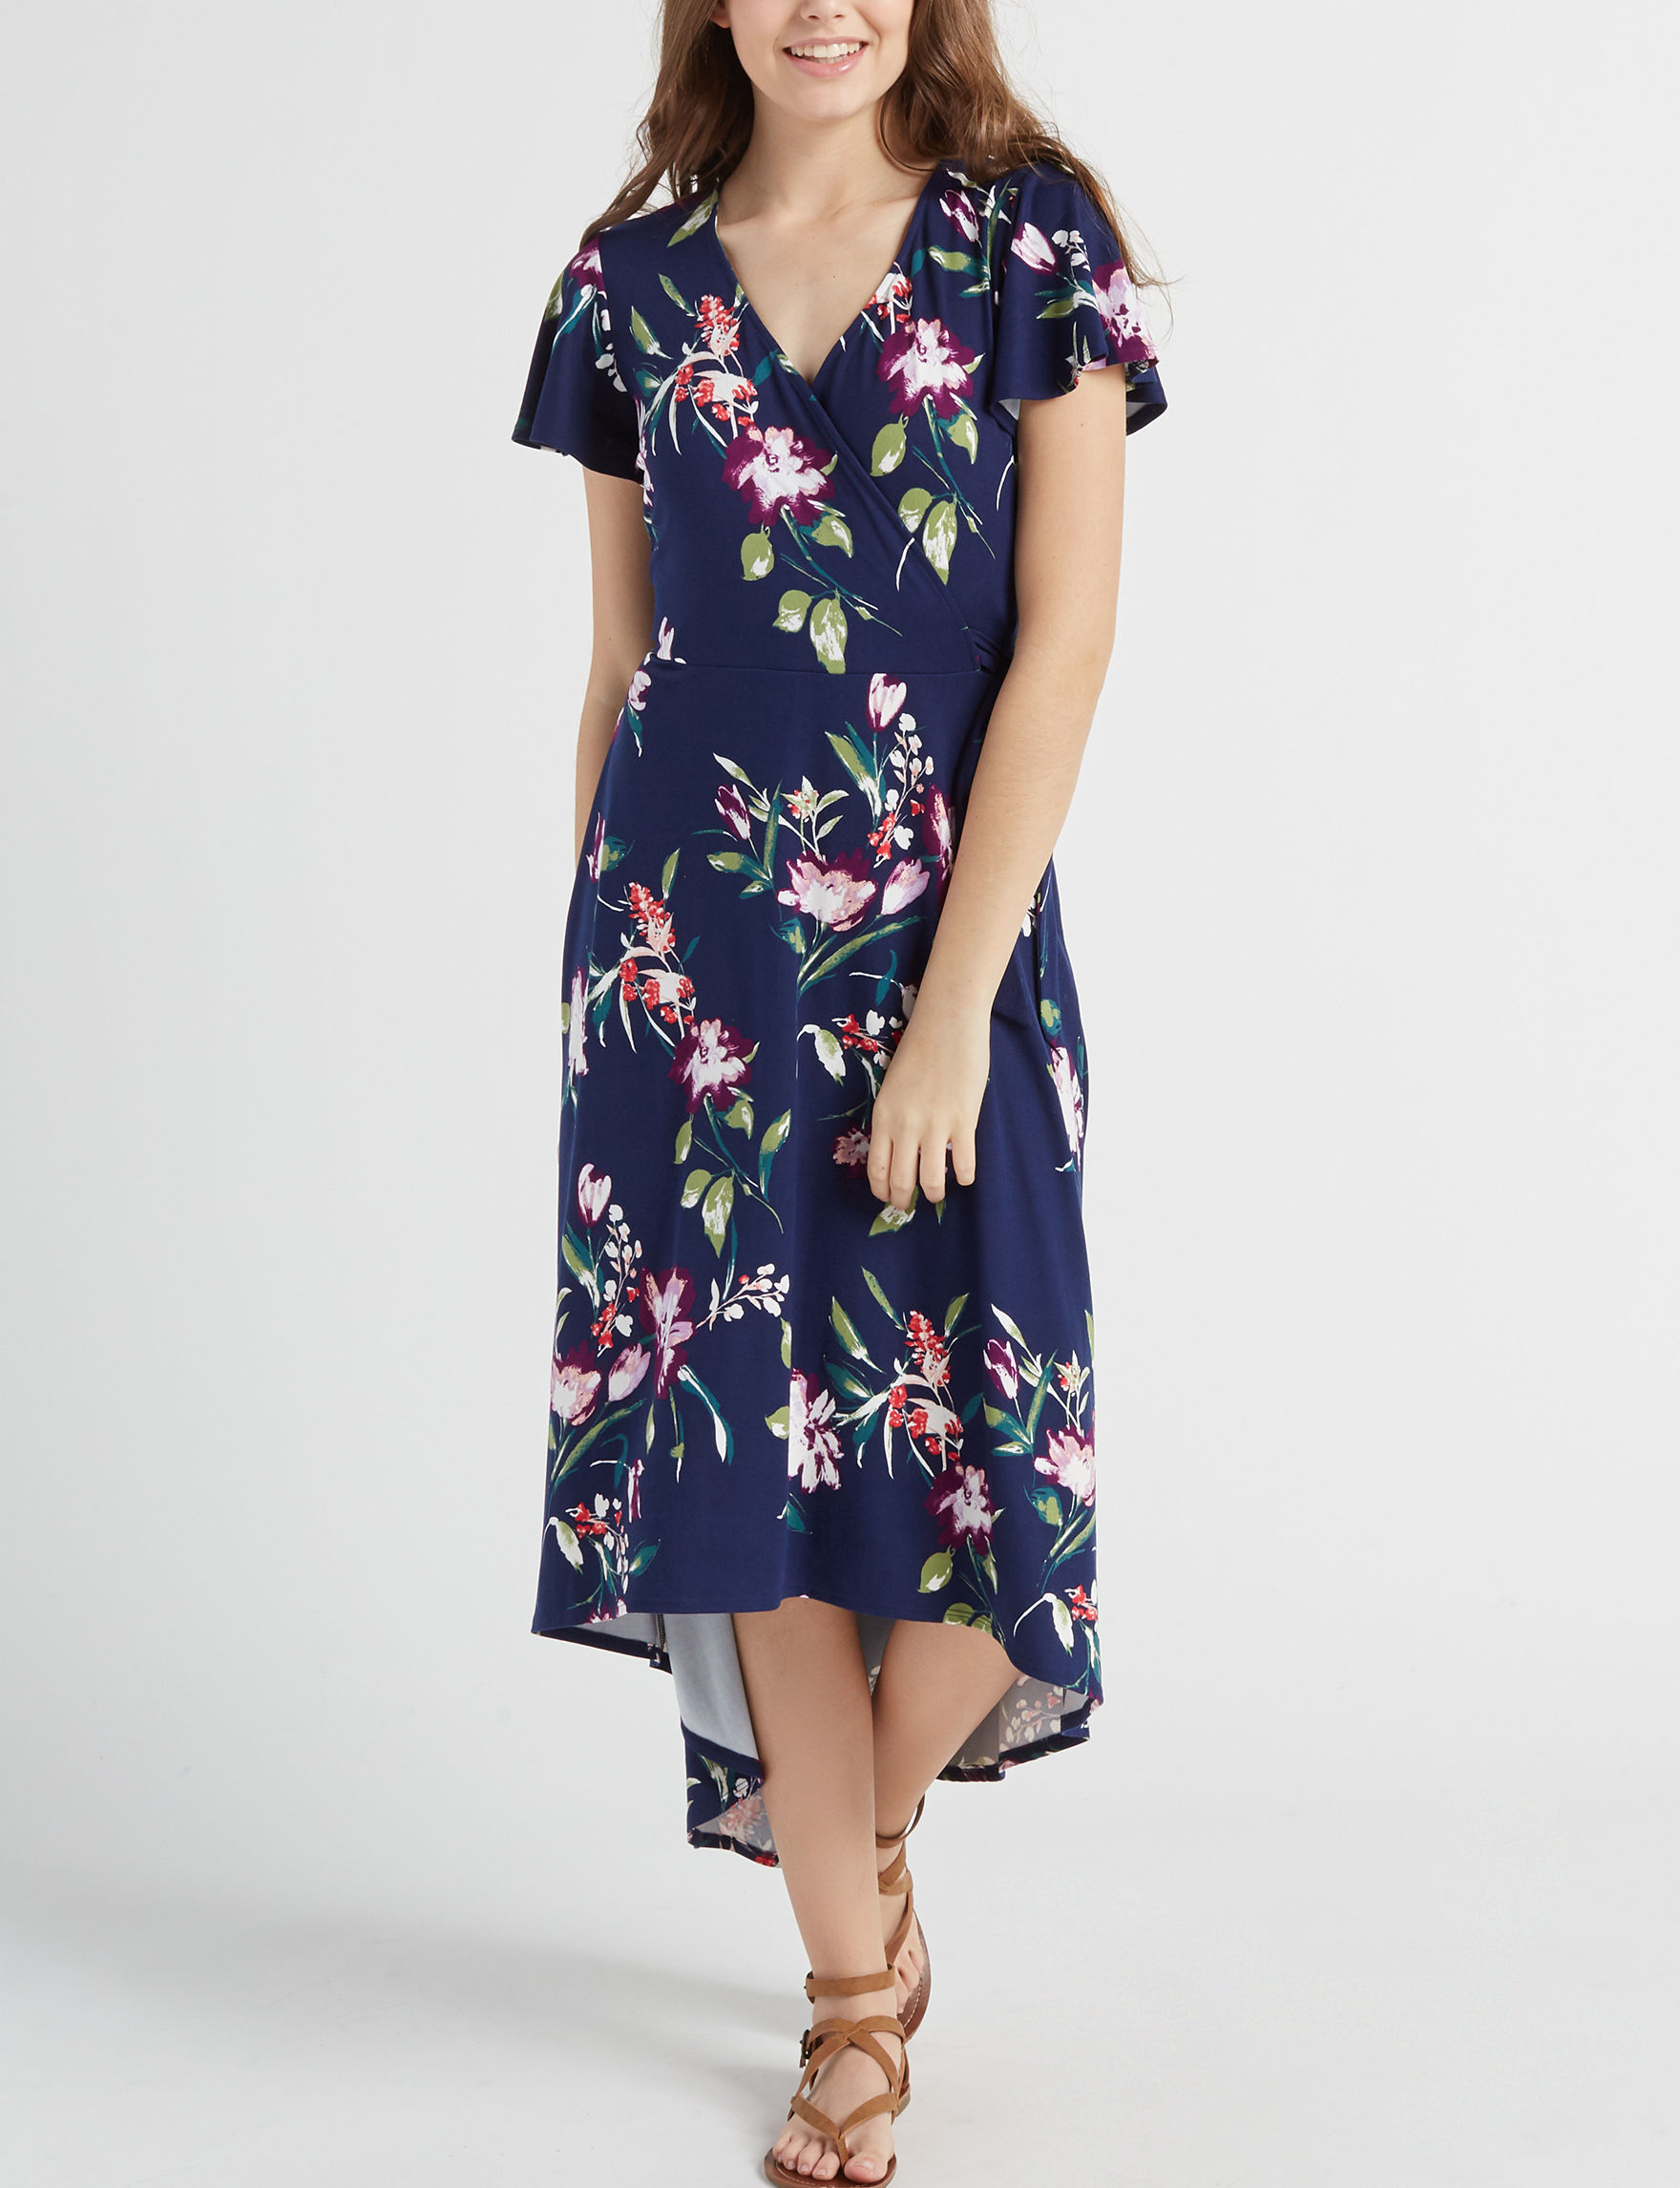 A. Byer Navy Everyday & Casual Fit & Flare Dresses